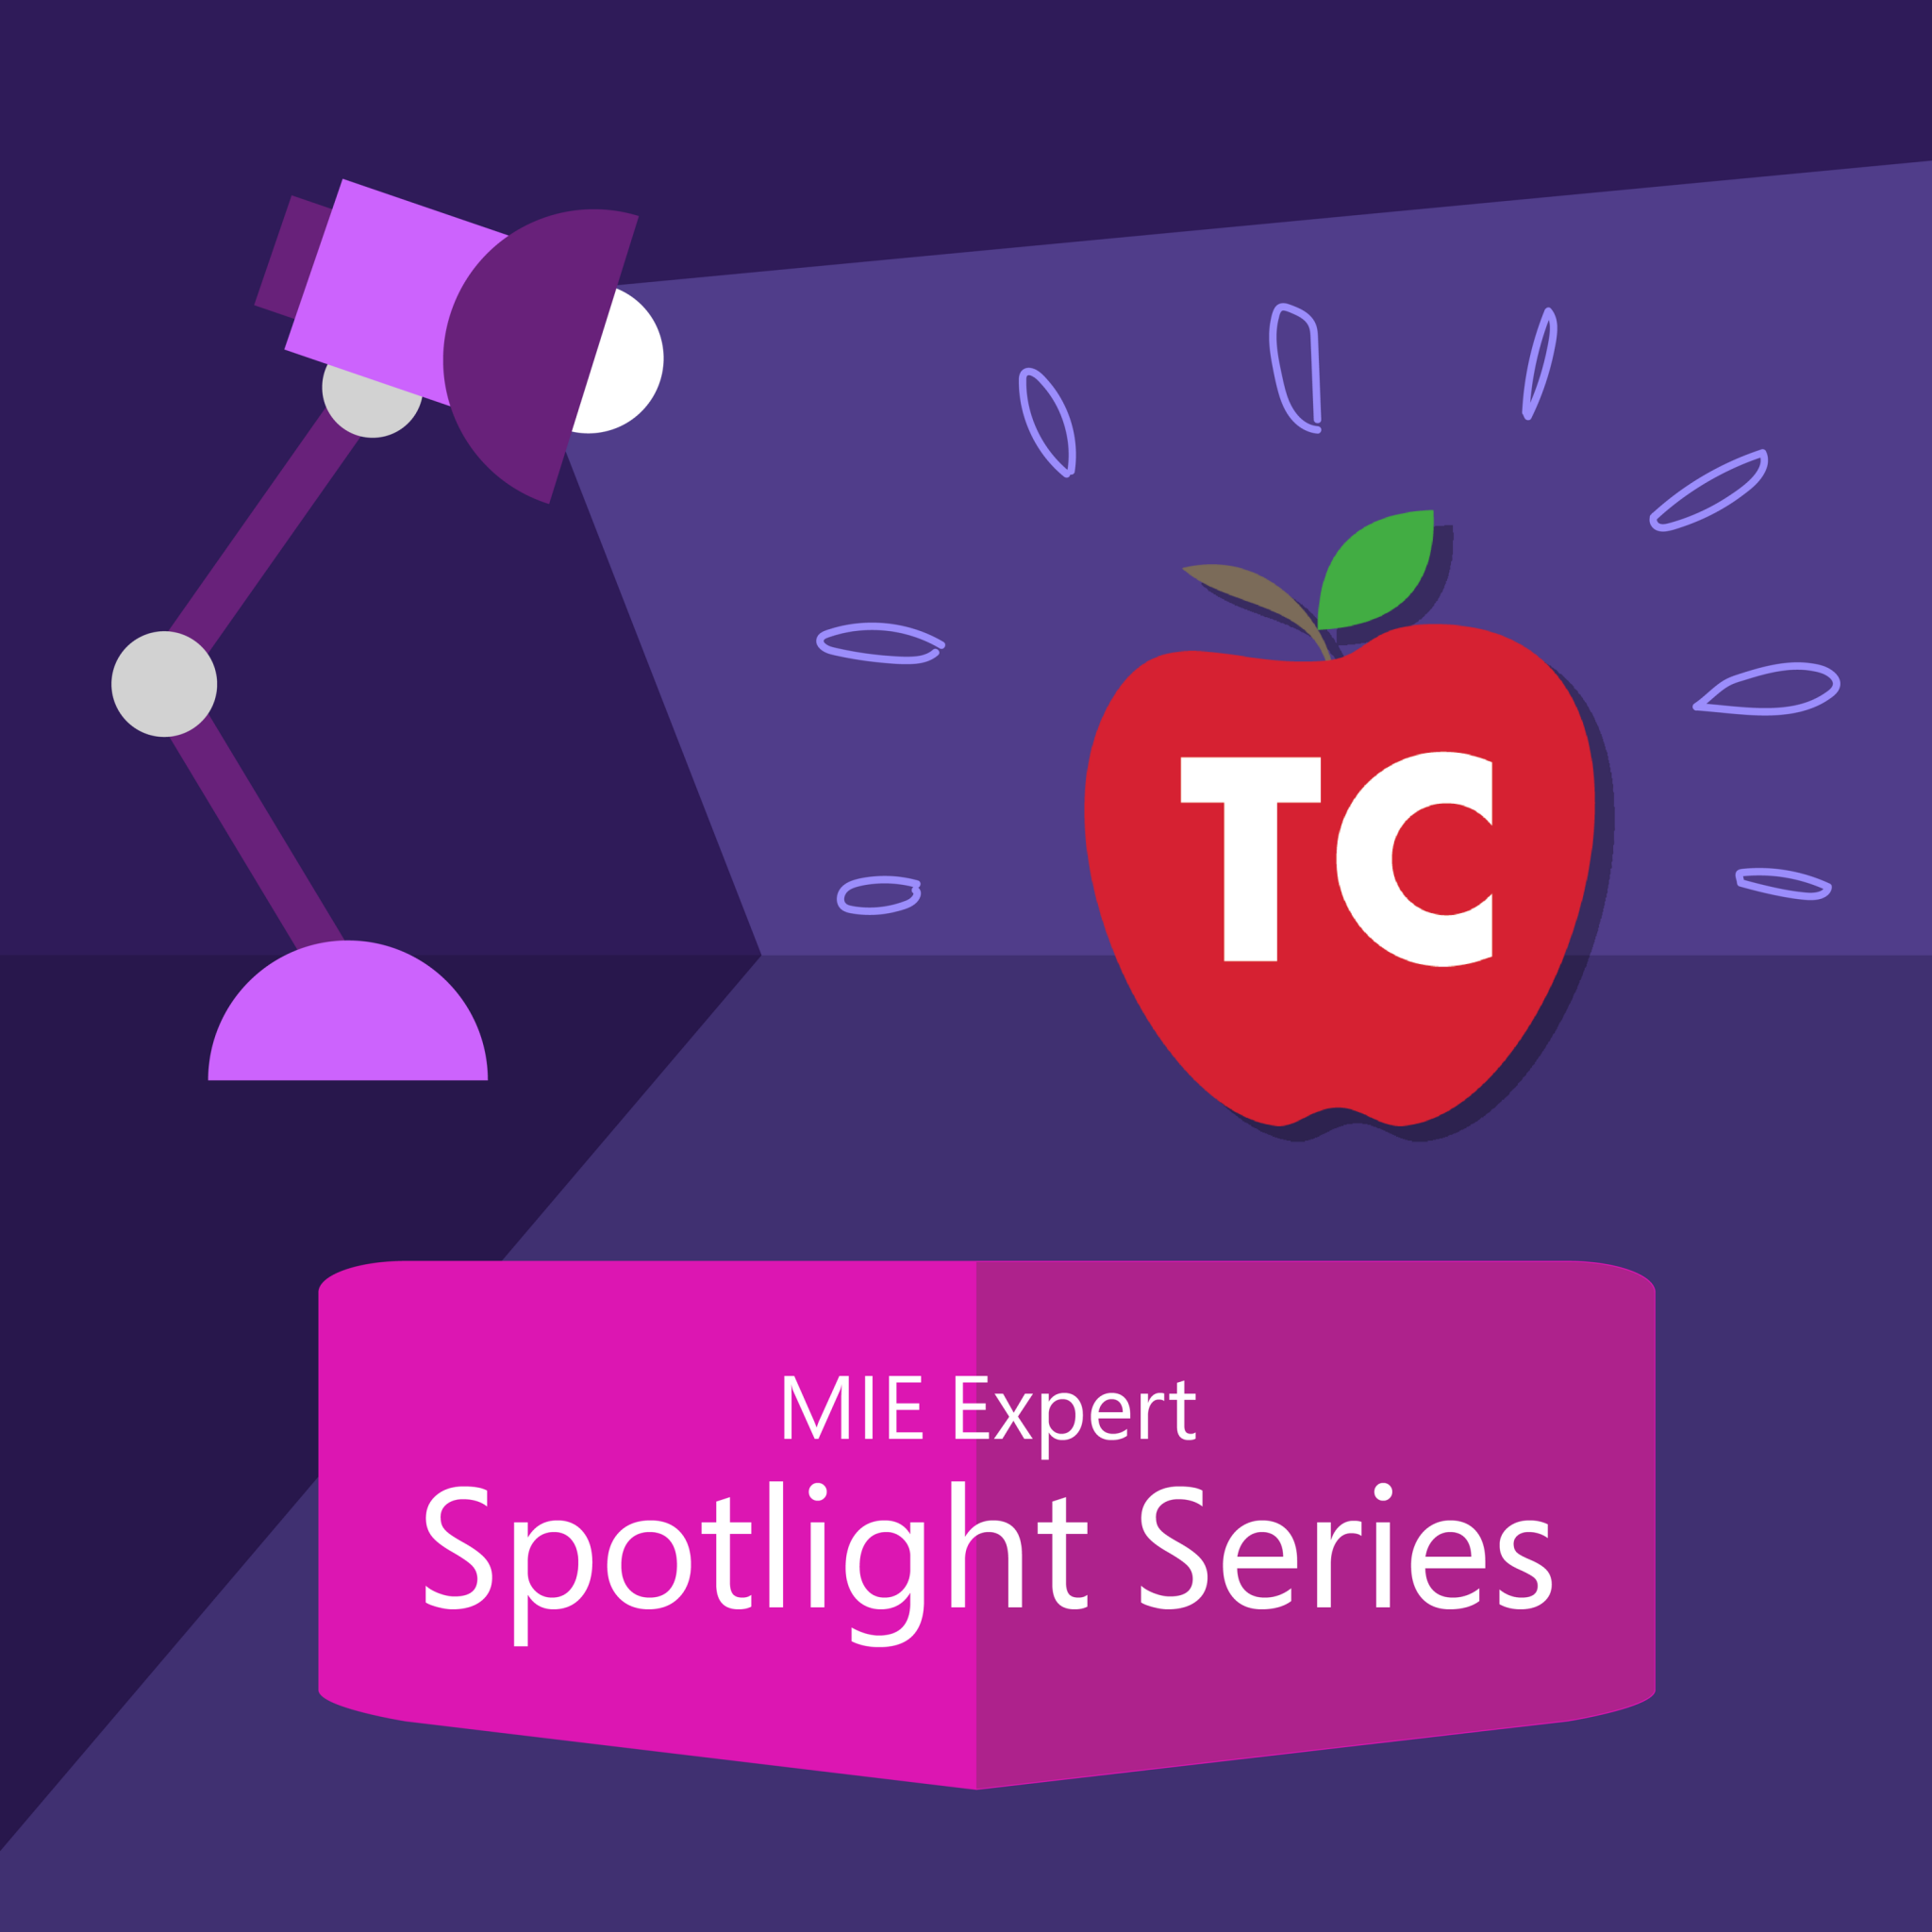 The Microsoft Innovative Expert Spotlight Series Podcast – The TeacherCast Educational Network